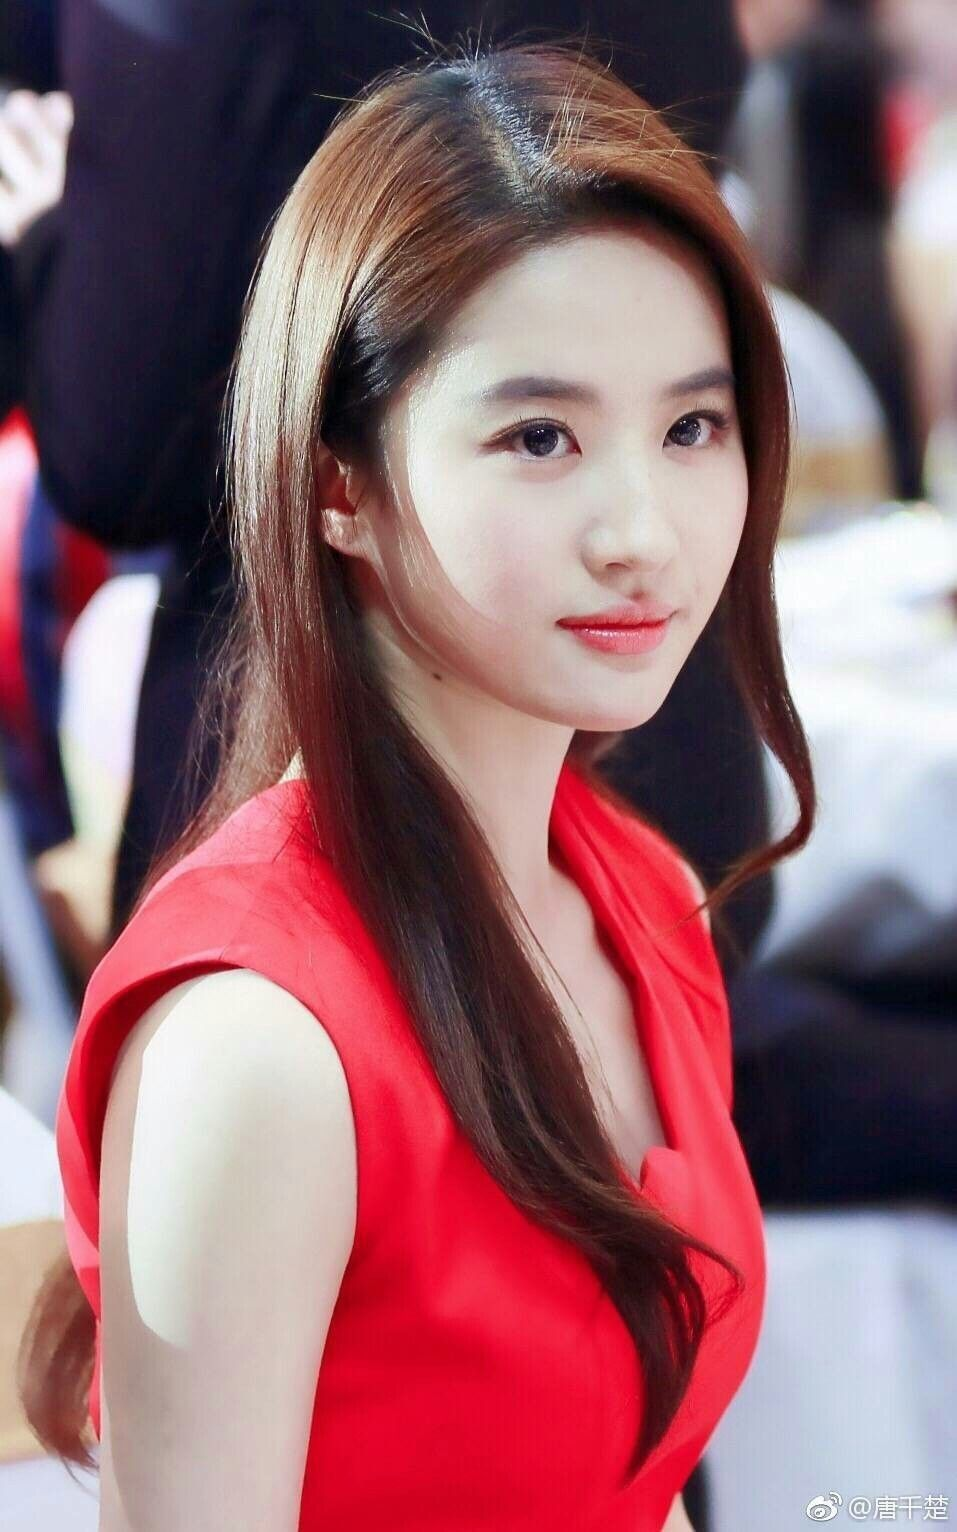 Pin by Tsang Eric on Chinese Actress in 2019 | Beautiful